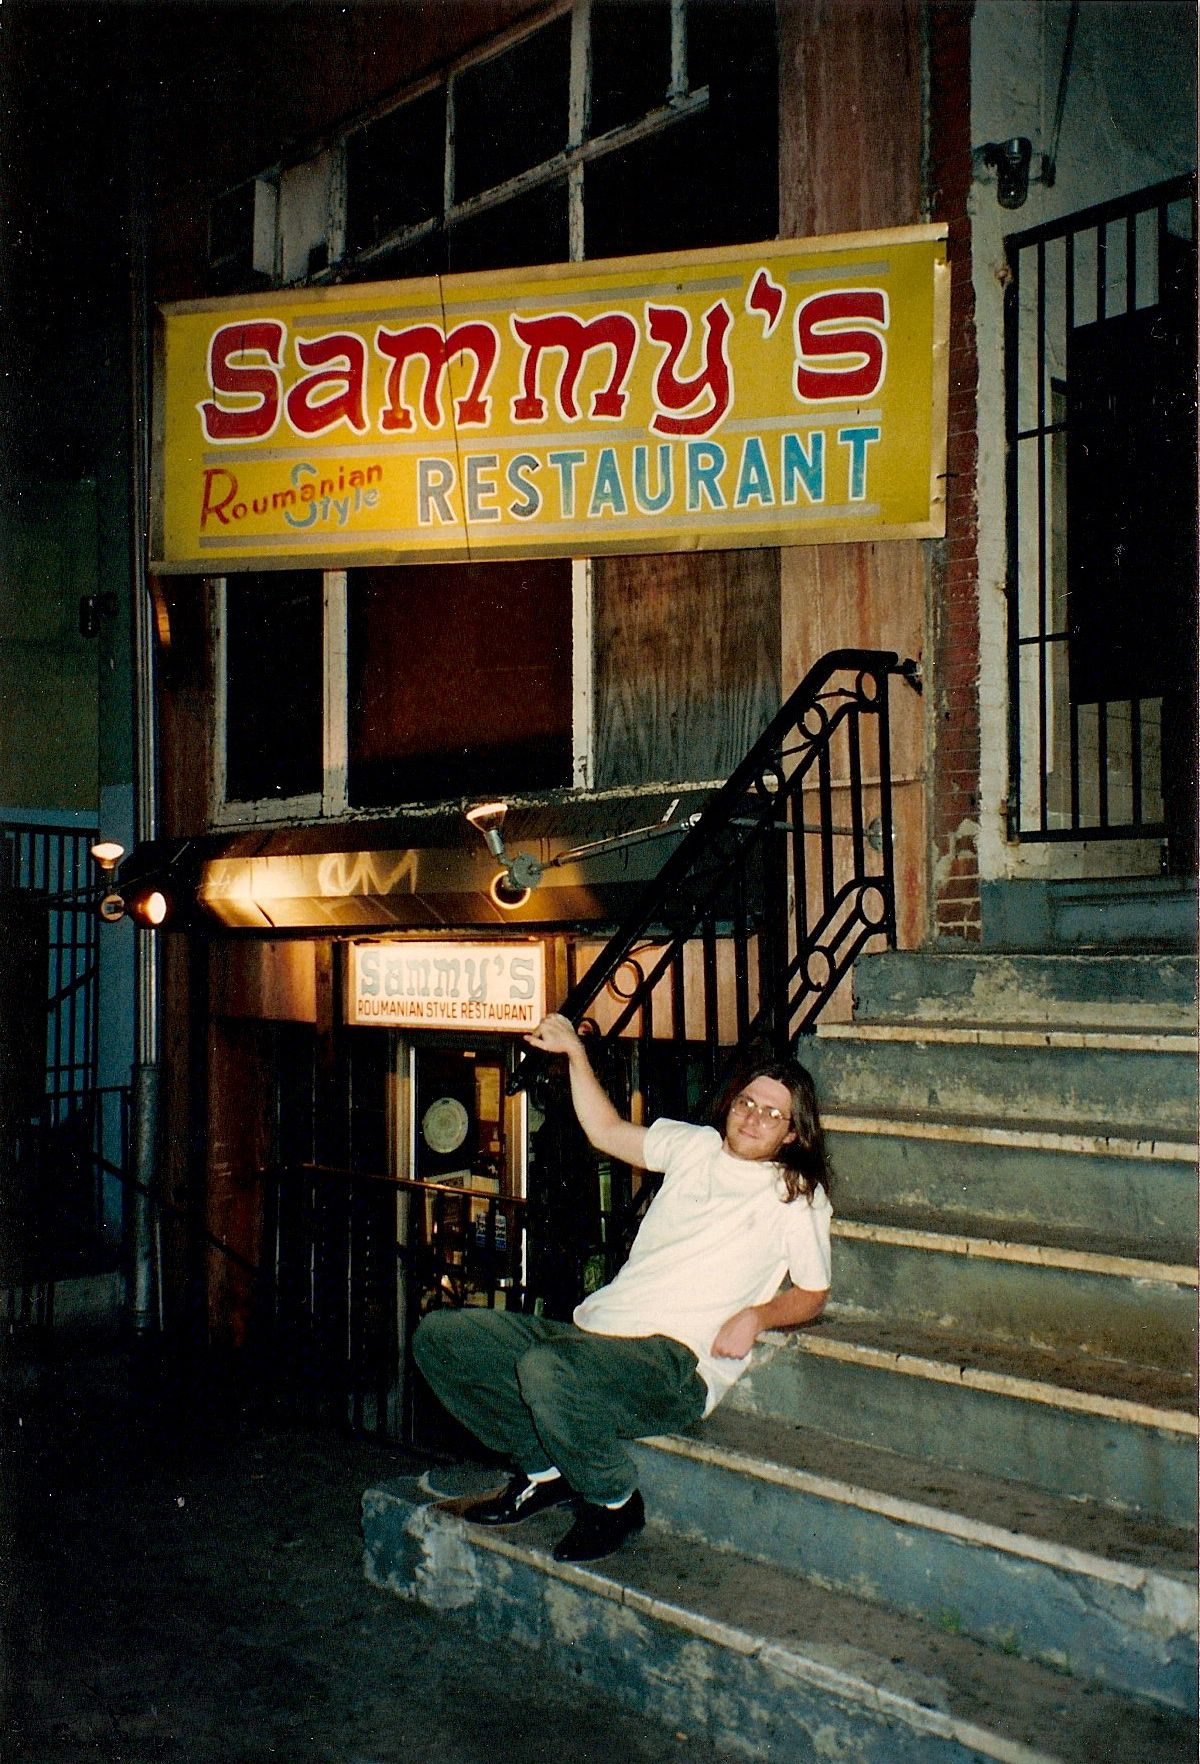 Sammys Roumanian An Amherst Tradition  Even Josh Knows